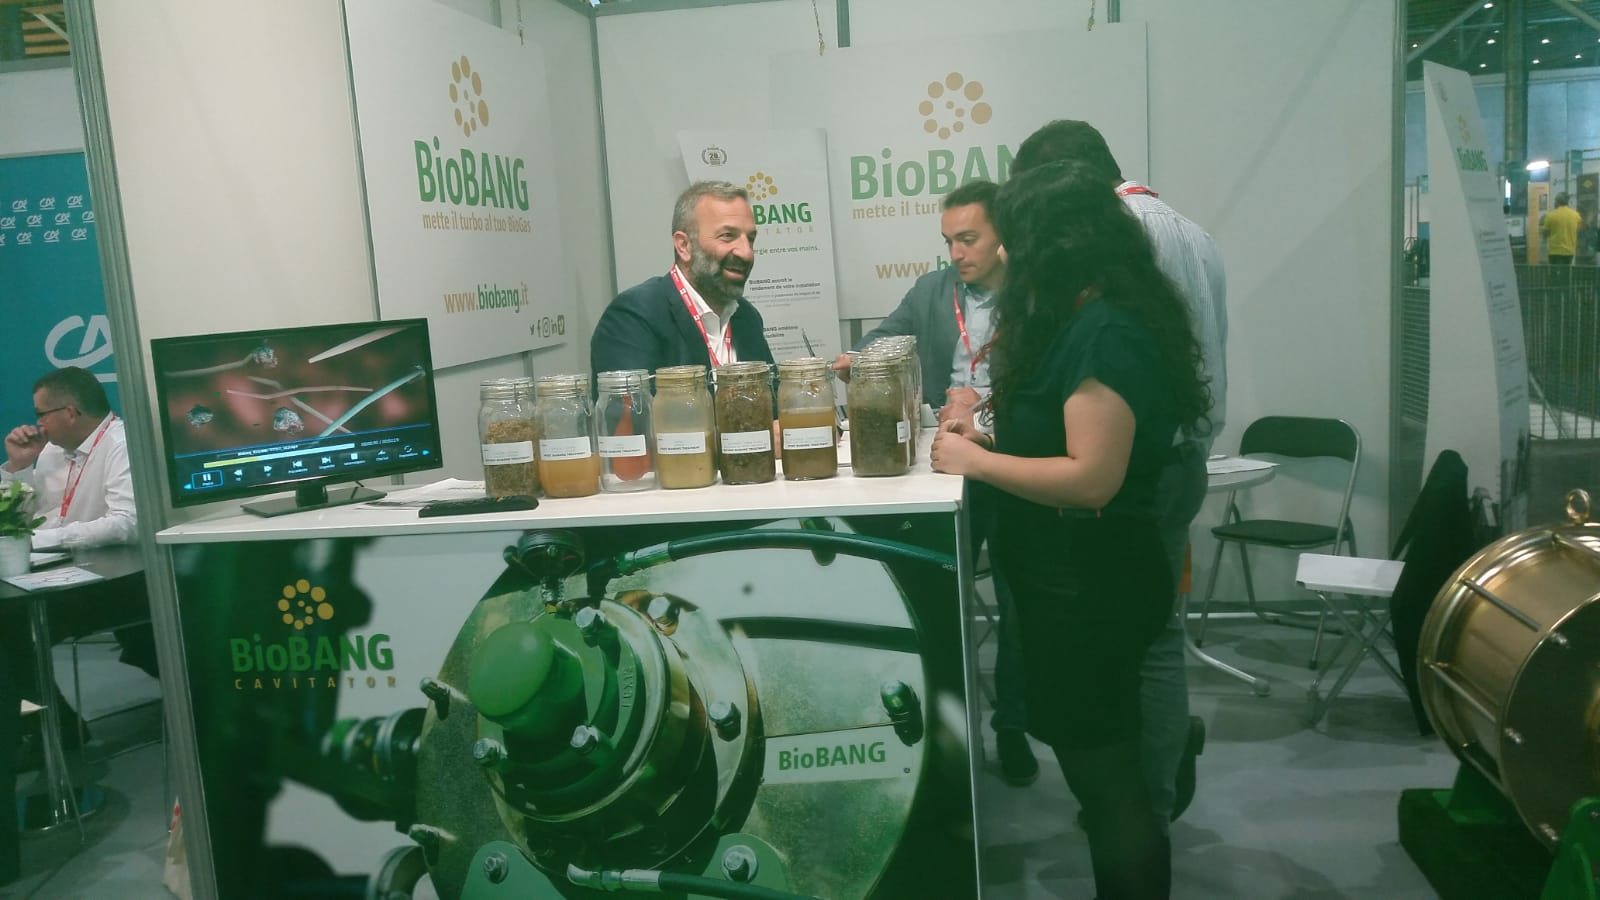 expo-biogas-lille-BioBANG_9